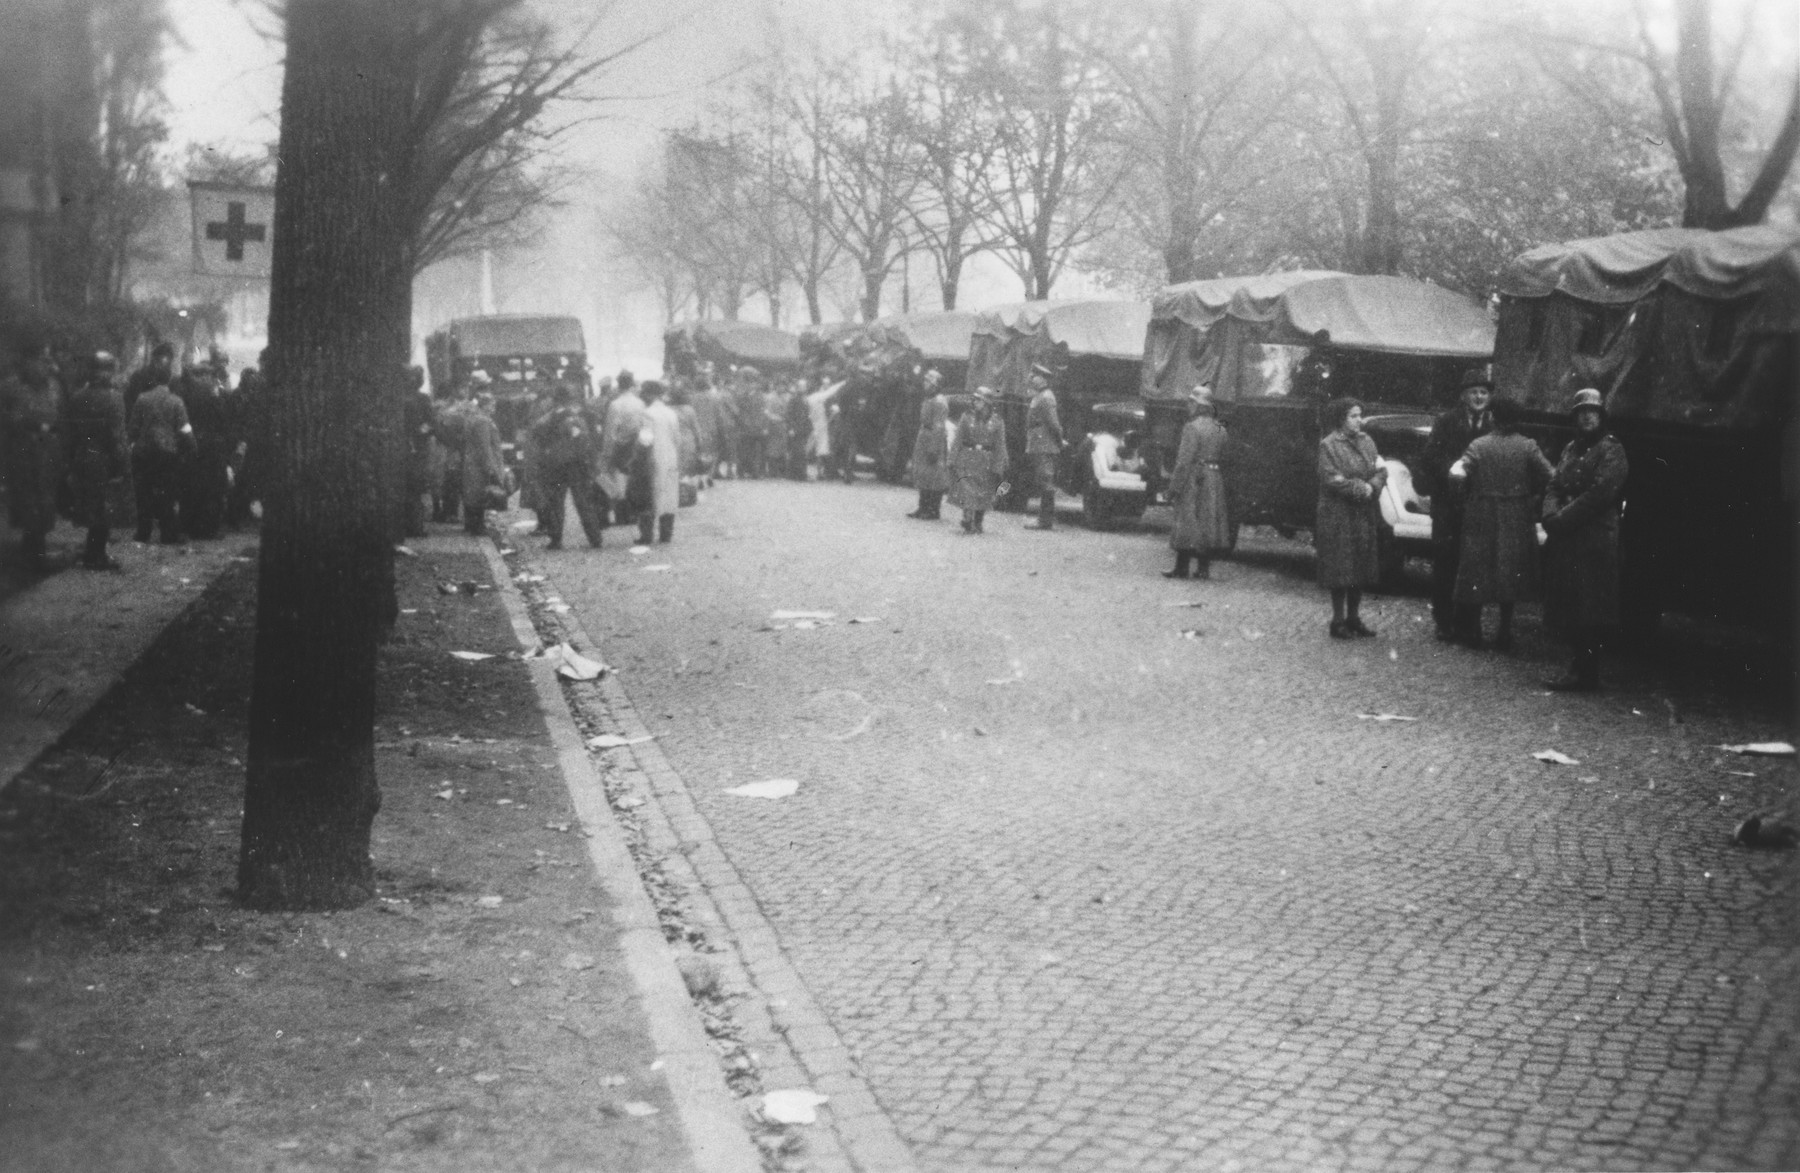 Members of Police Battalion 101 stand in front of a convoy of trucks that have been parked across from an assembly point on the Moorweidenstrasse in Hamburg, where Germans who are the victims of Allied air raids are gathered prior to their evacuation.  One image from a photograph album belonging to a member of Police Battalion 101.